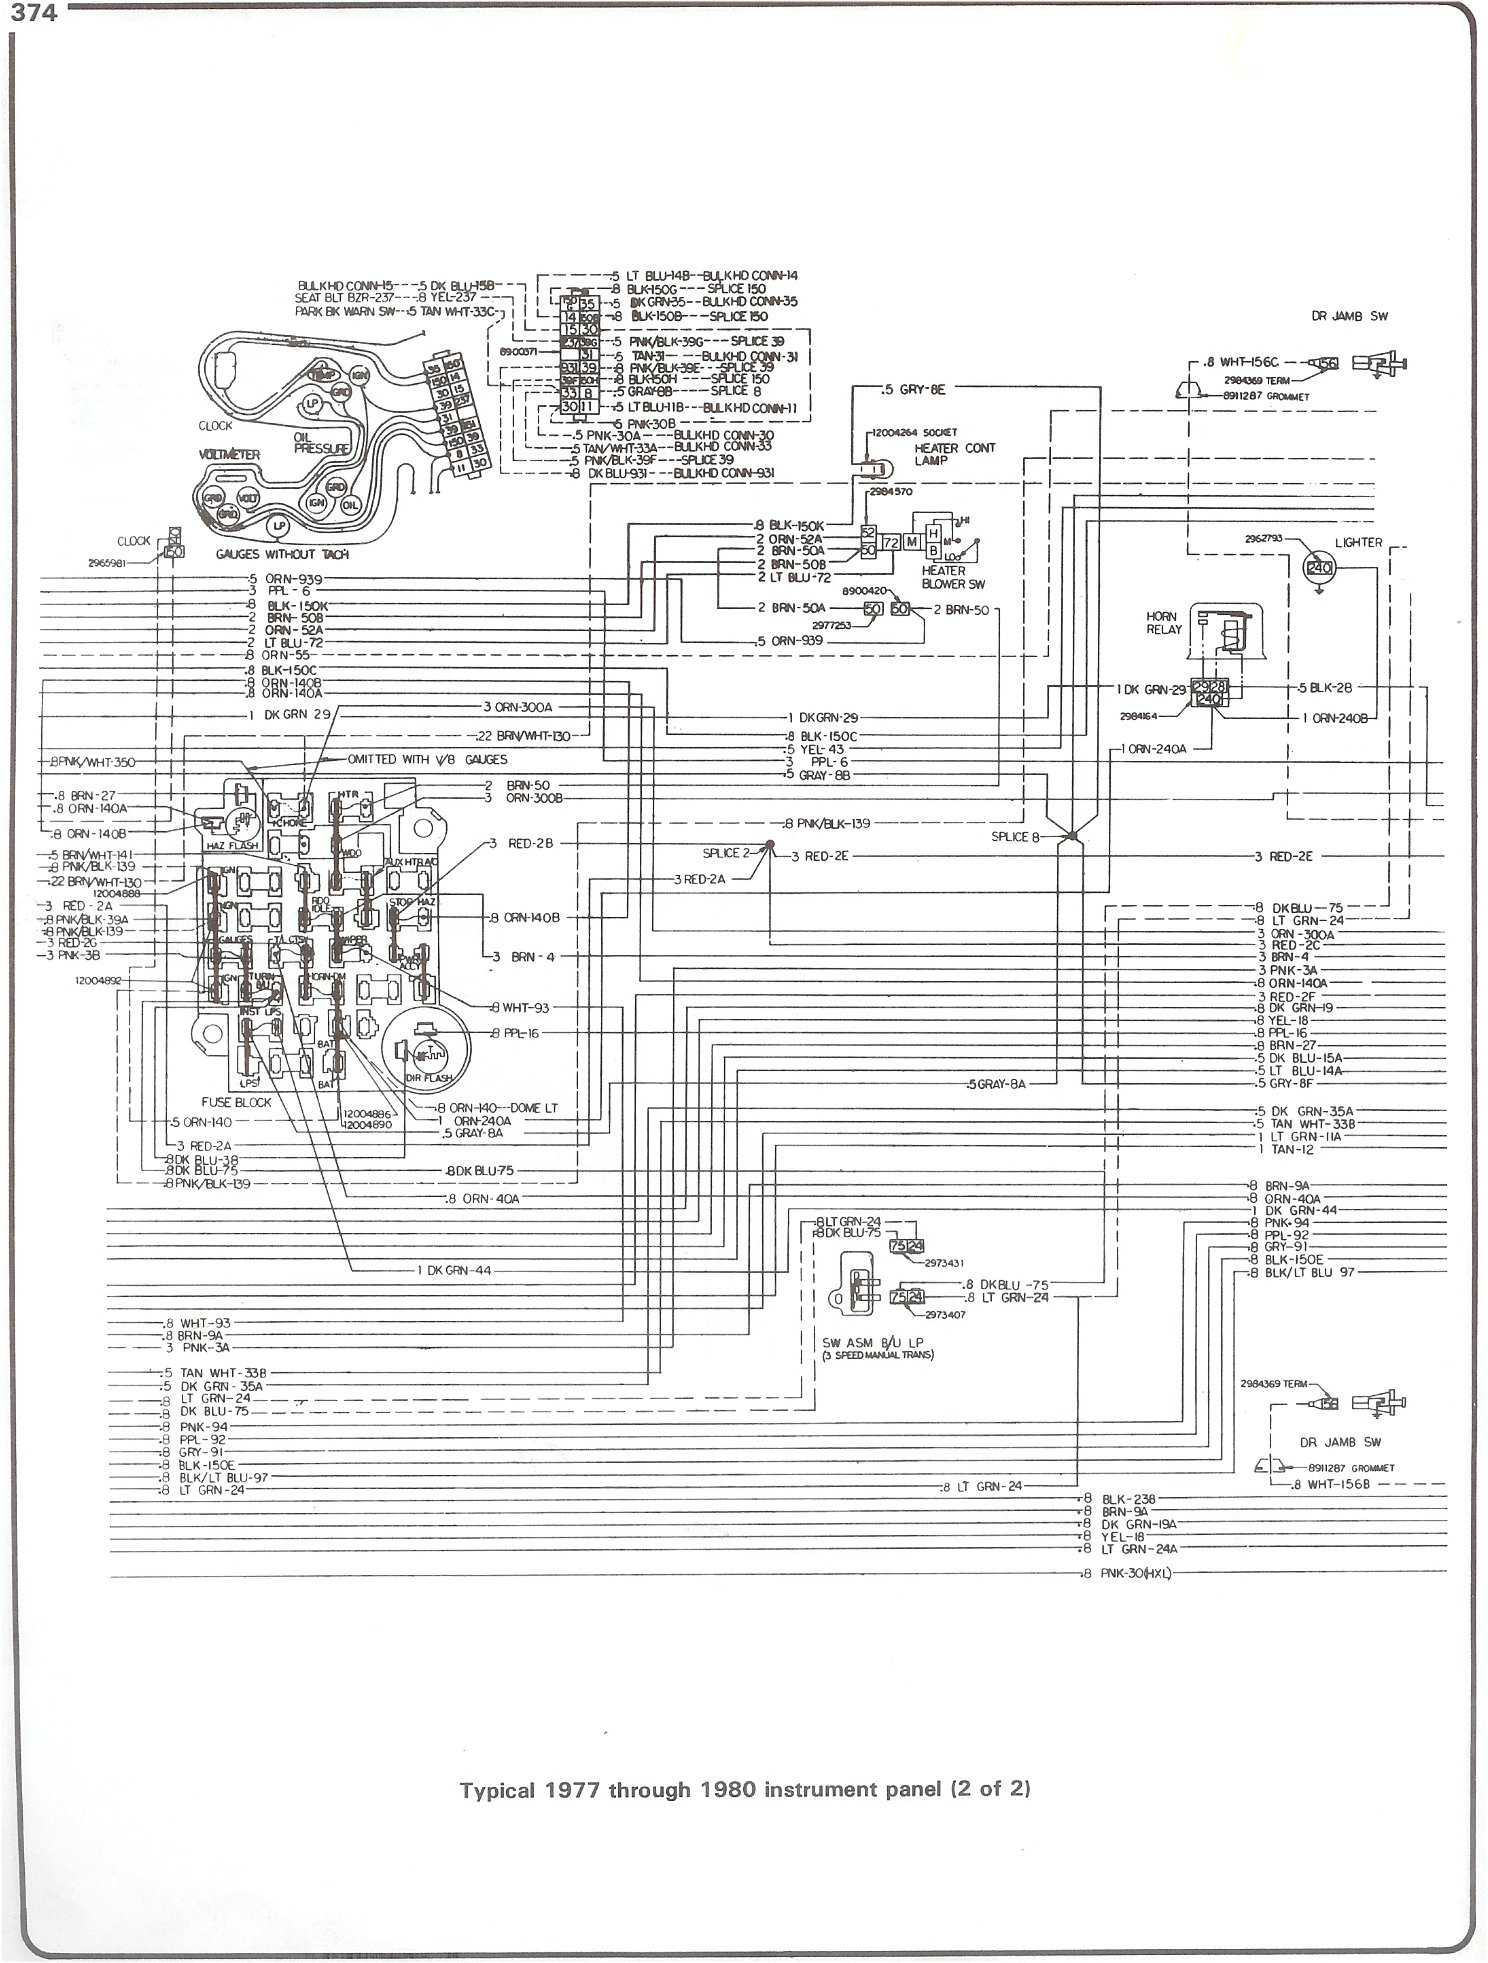 complete 73 87 wiring diagrams rh forum 73 87chevytrucks com 1987 Chevy Camaro Wiring Diagram 1987 Chevy Wiring Diagram